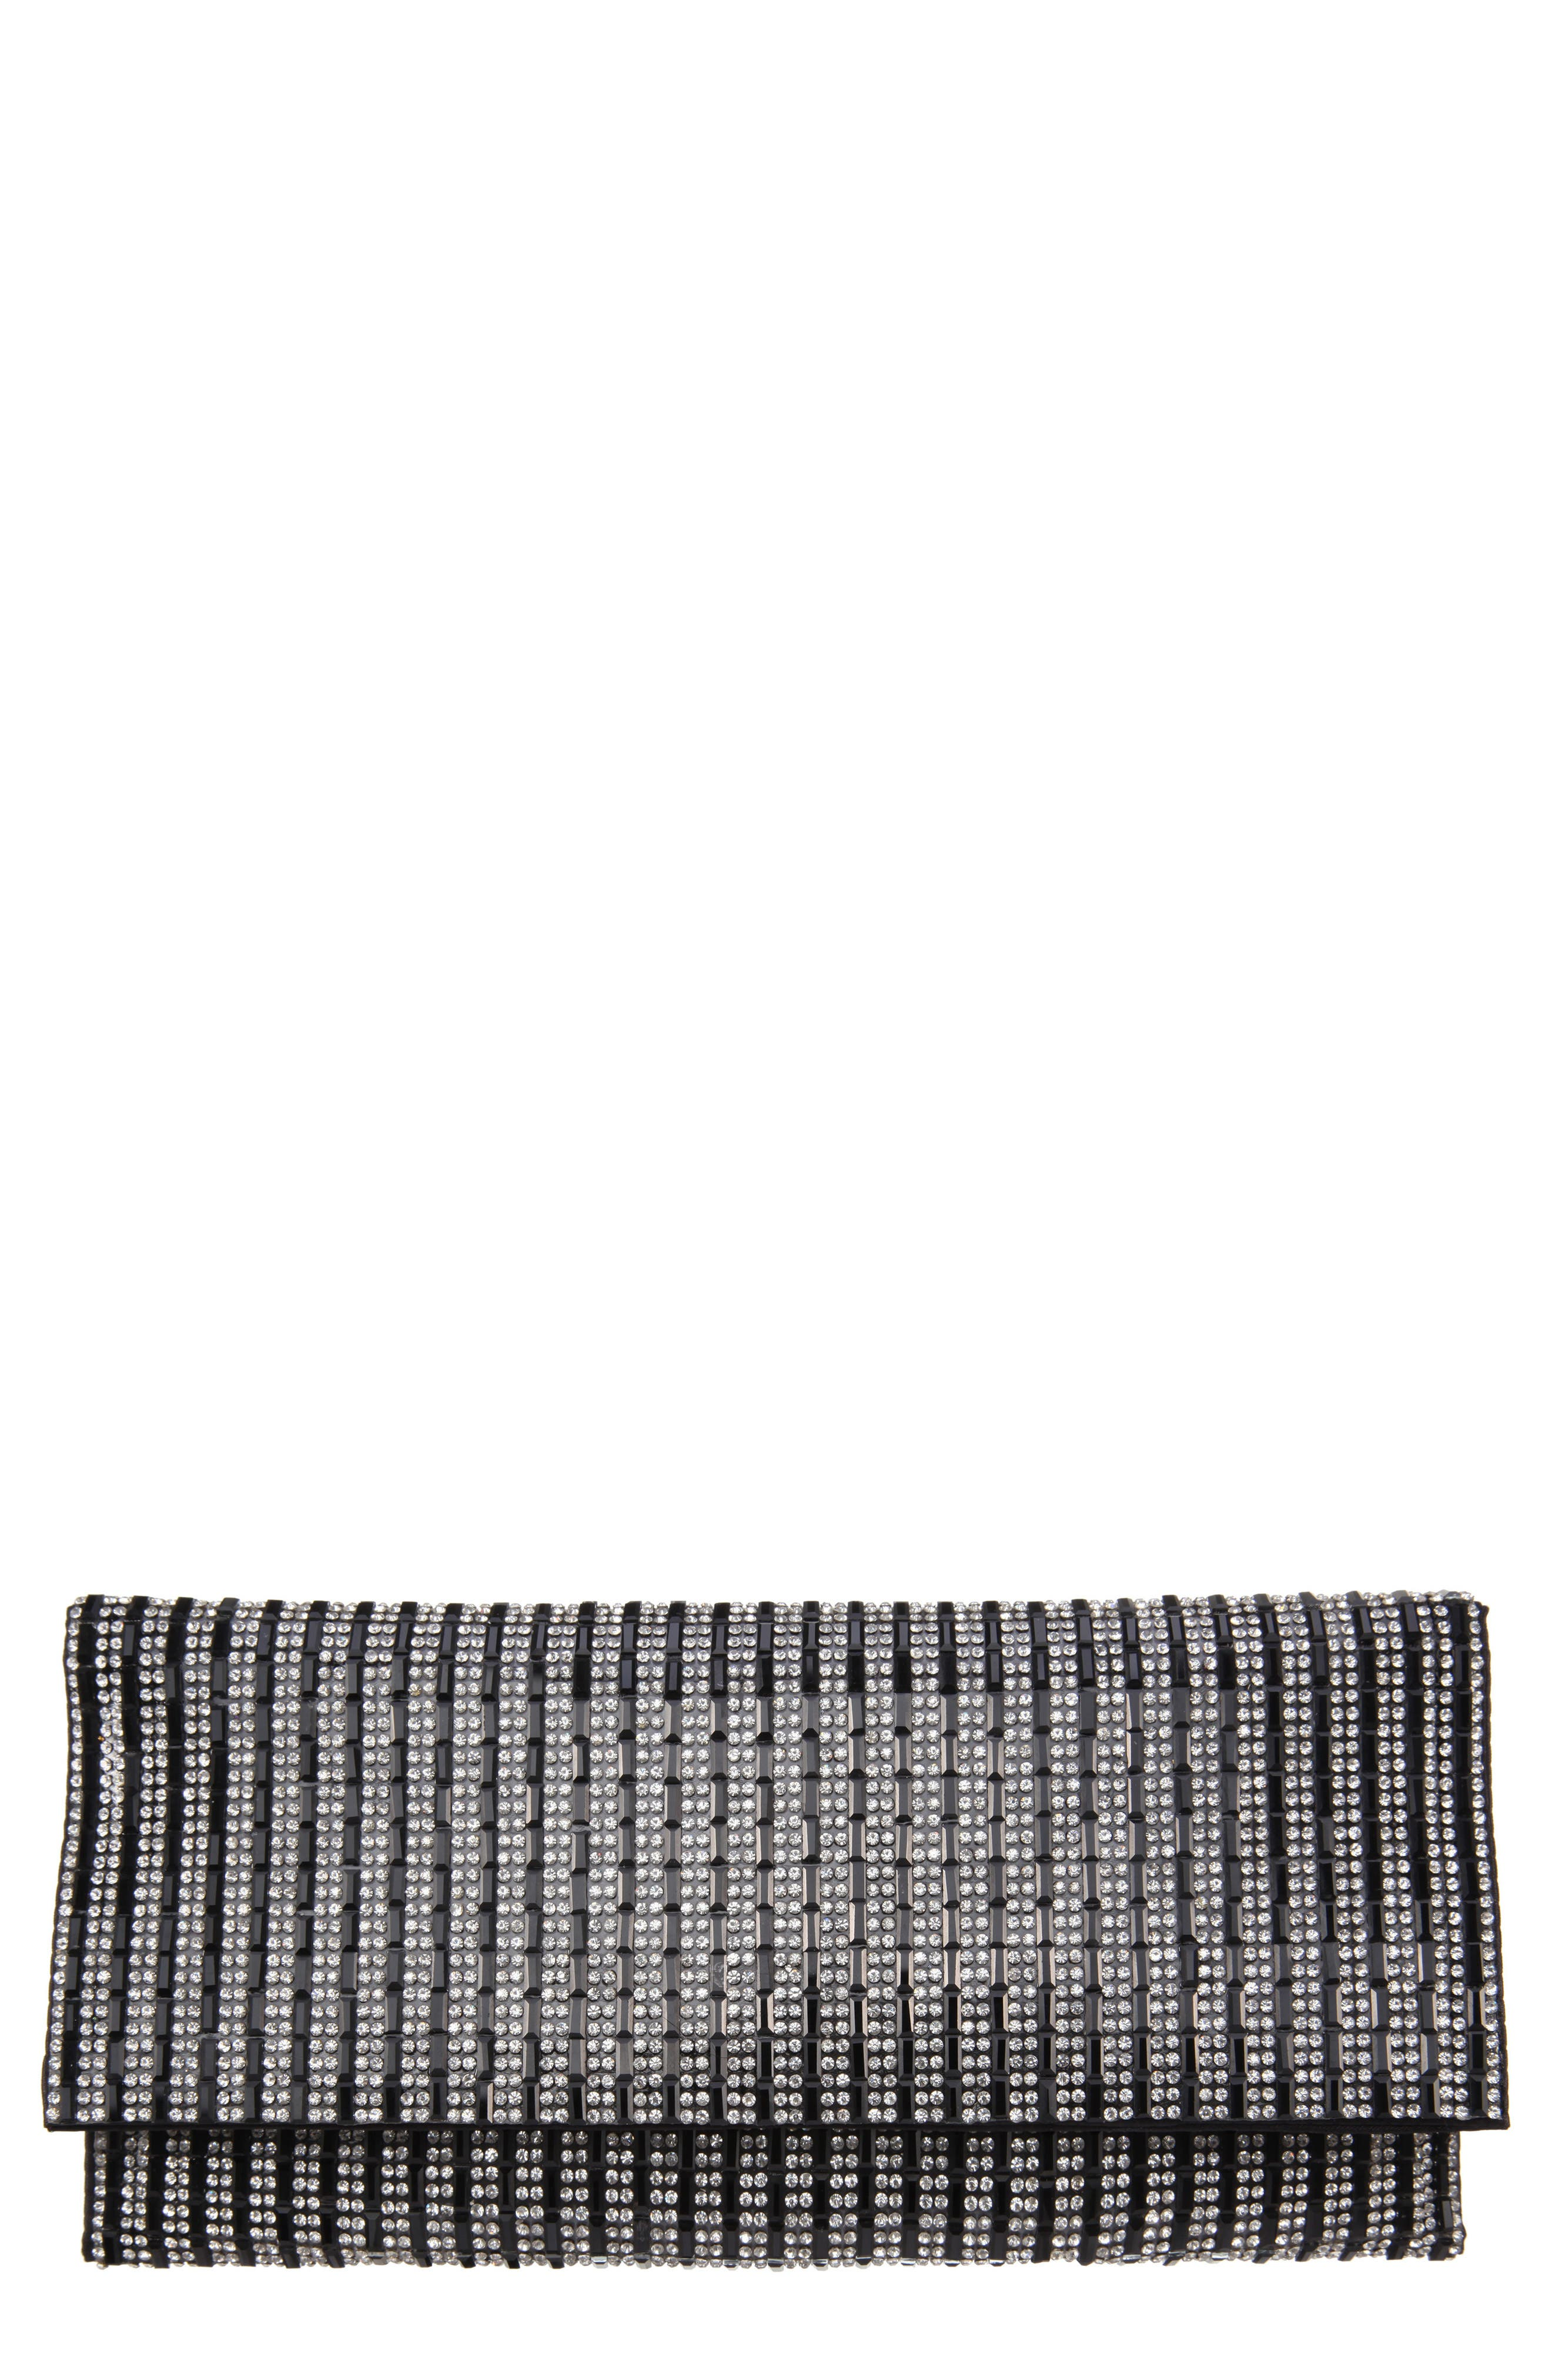 Crystal Embellished Clutch,                             Main thumbnail 1, color,                             Black/ White